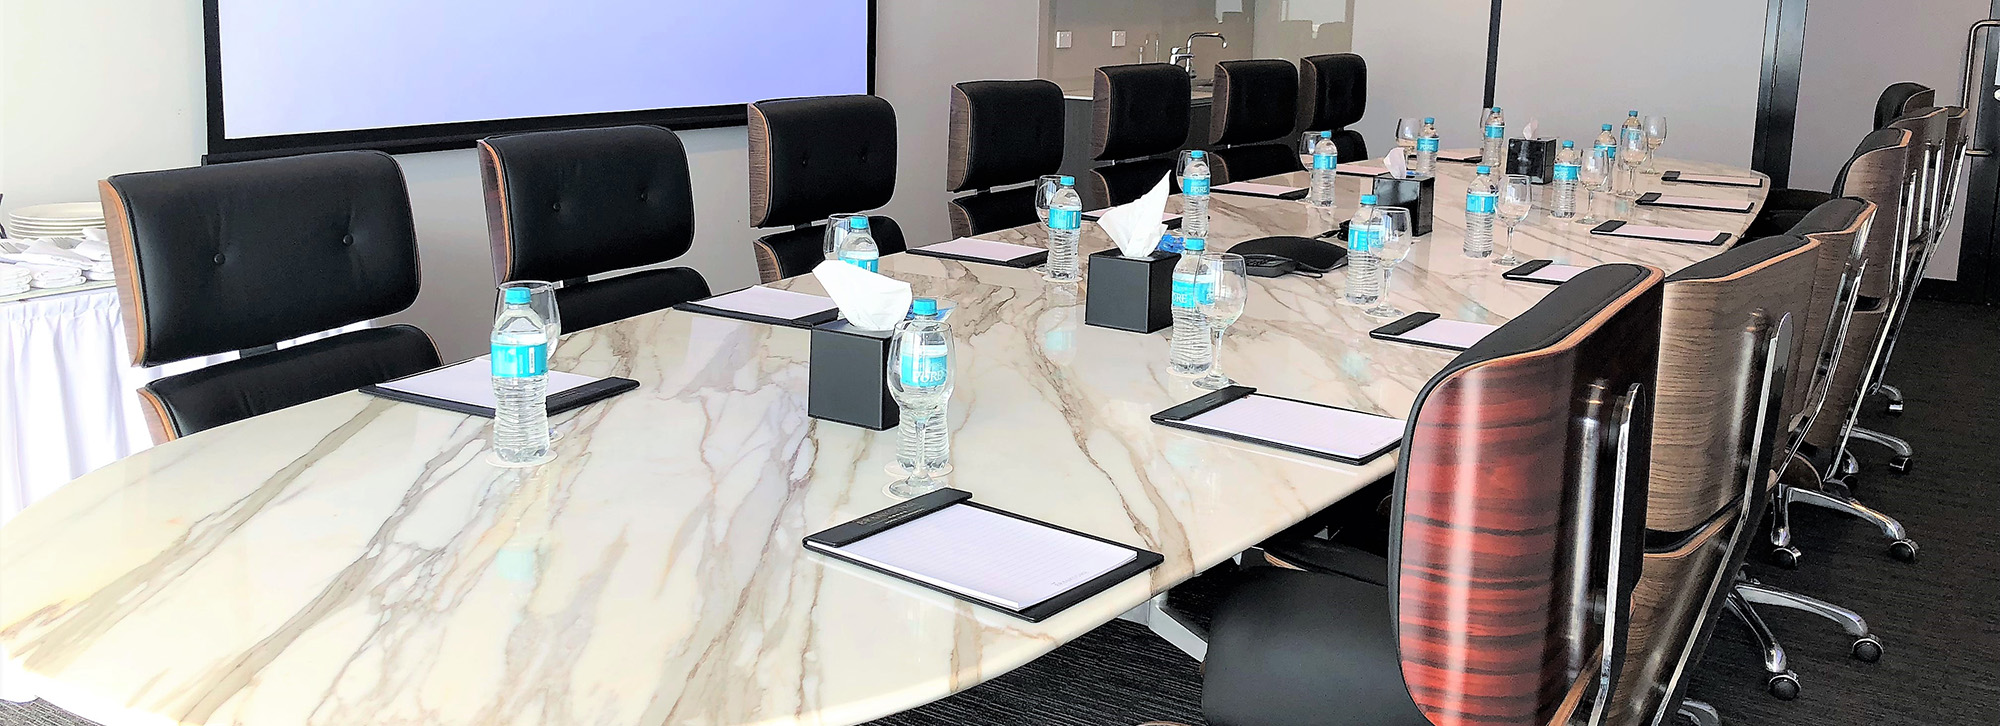 Board Room configuration for up to 14